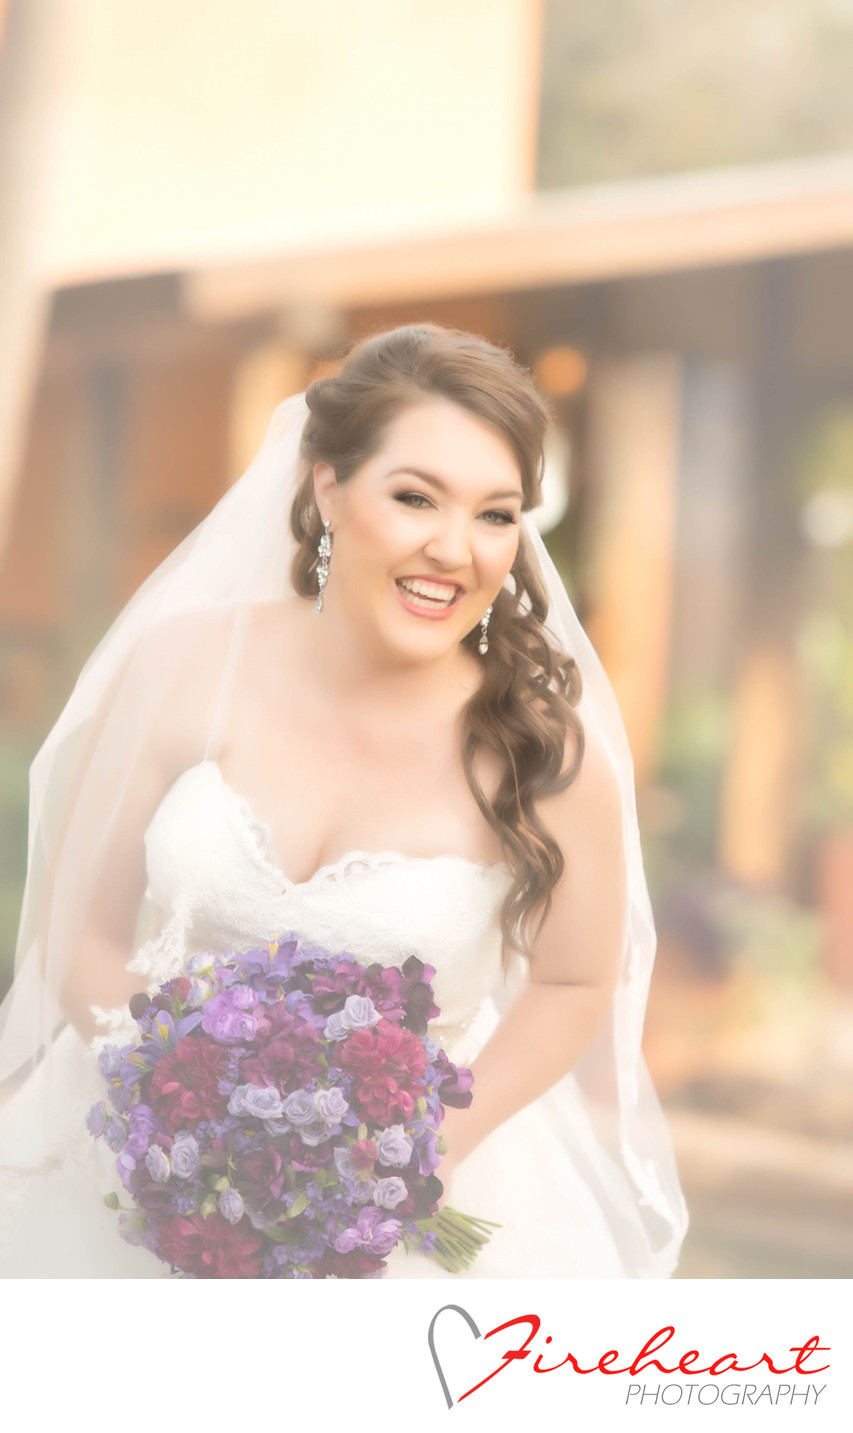 The joy of wedding photography at Maderia Estates